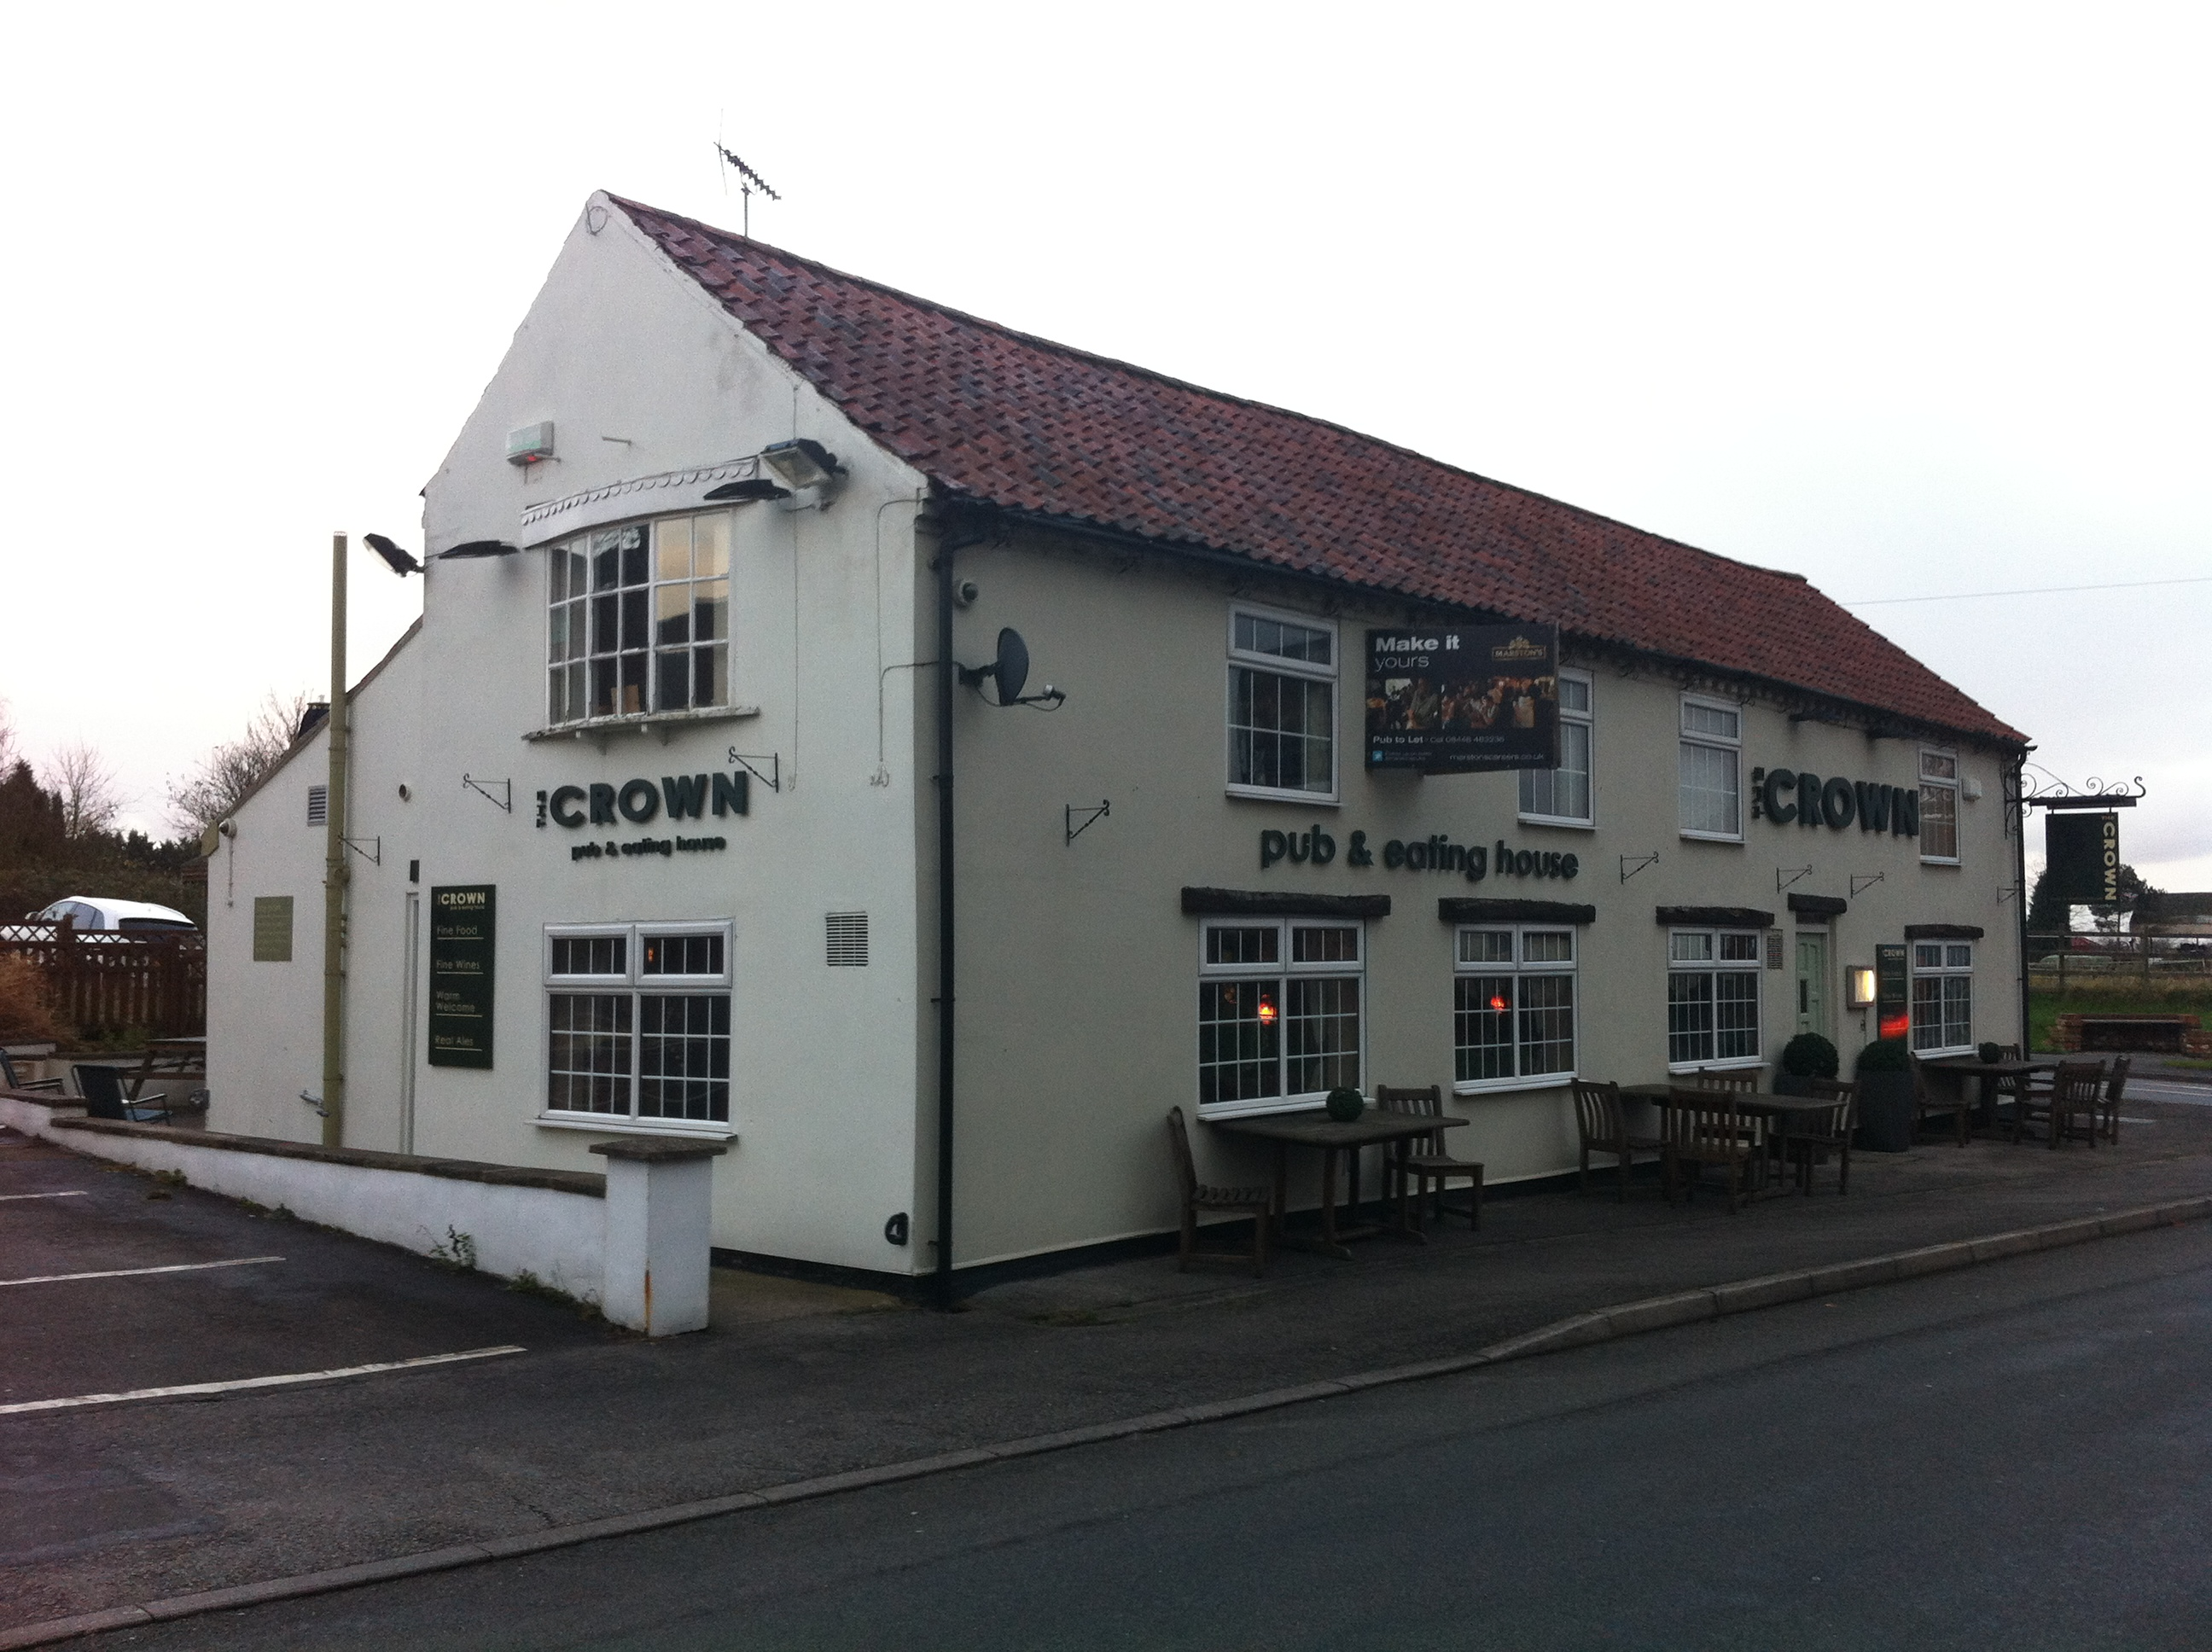 The Crown, High Street, NEWARK, Nottinghamshire